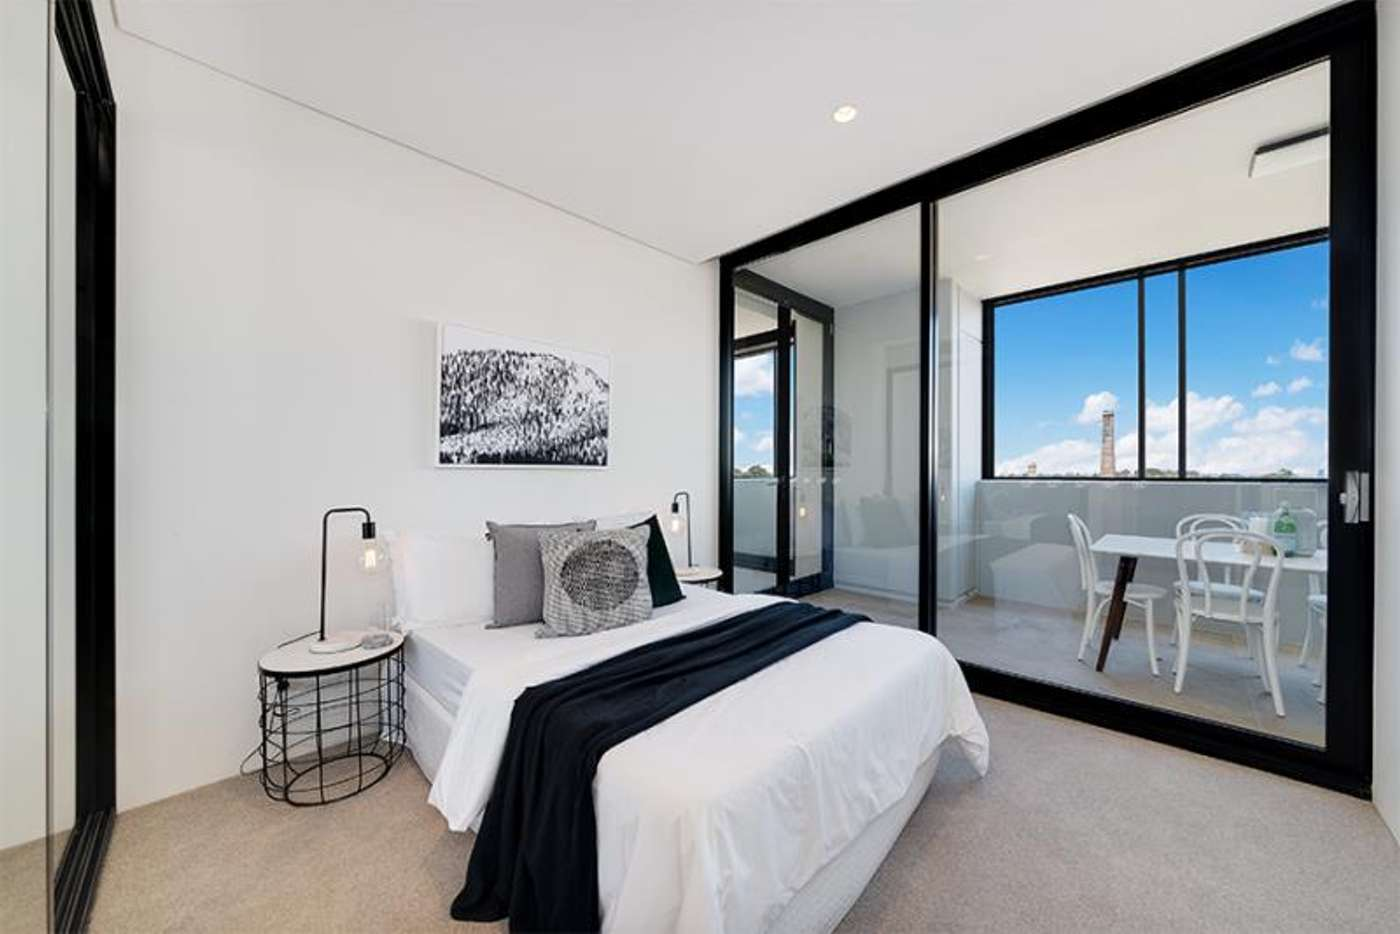 Fifth view of Homely apartment listing, H3,105/78 Mobbs Lane, Eastwood NSW 2122